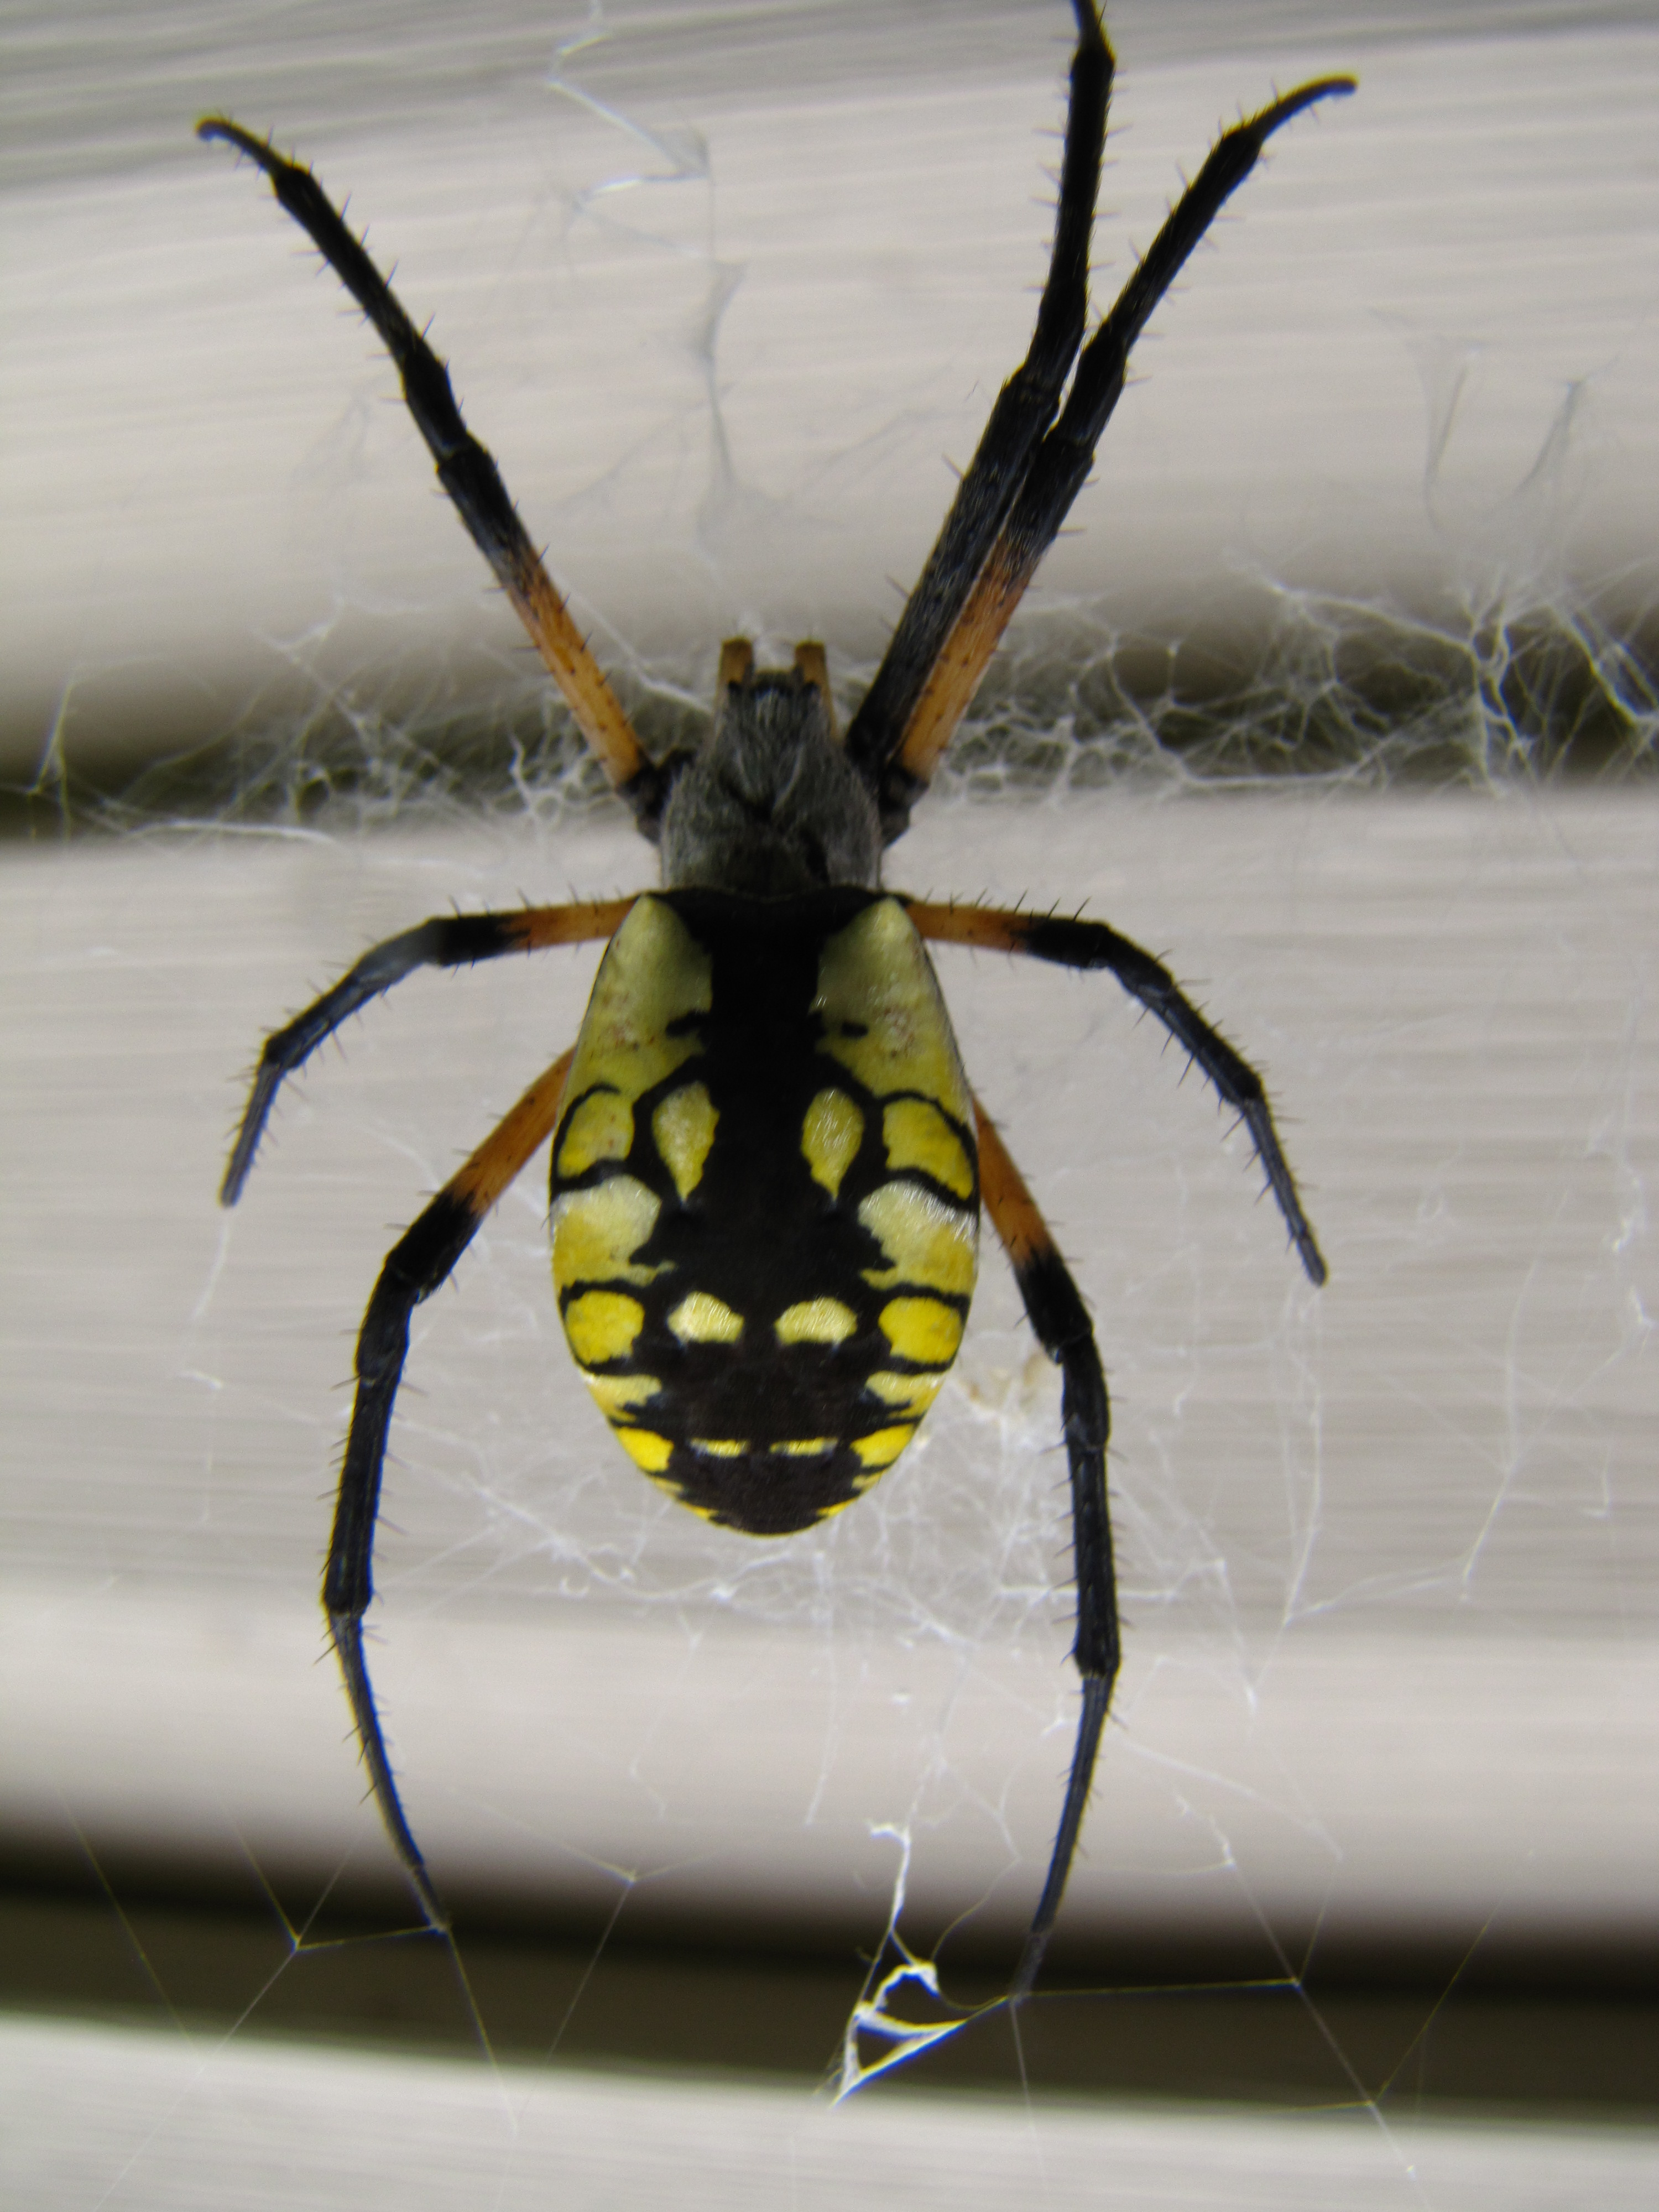 Araneidae Orb Weaver (submitted photo)